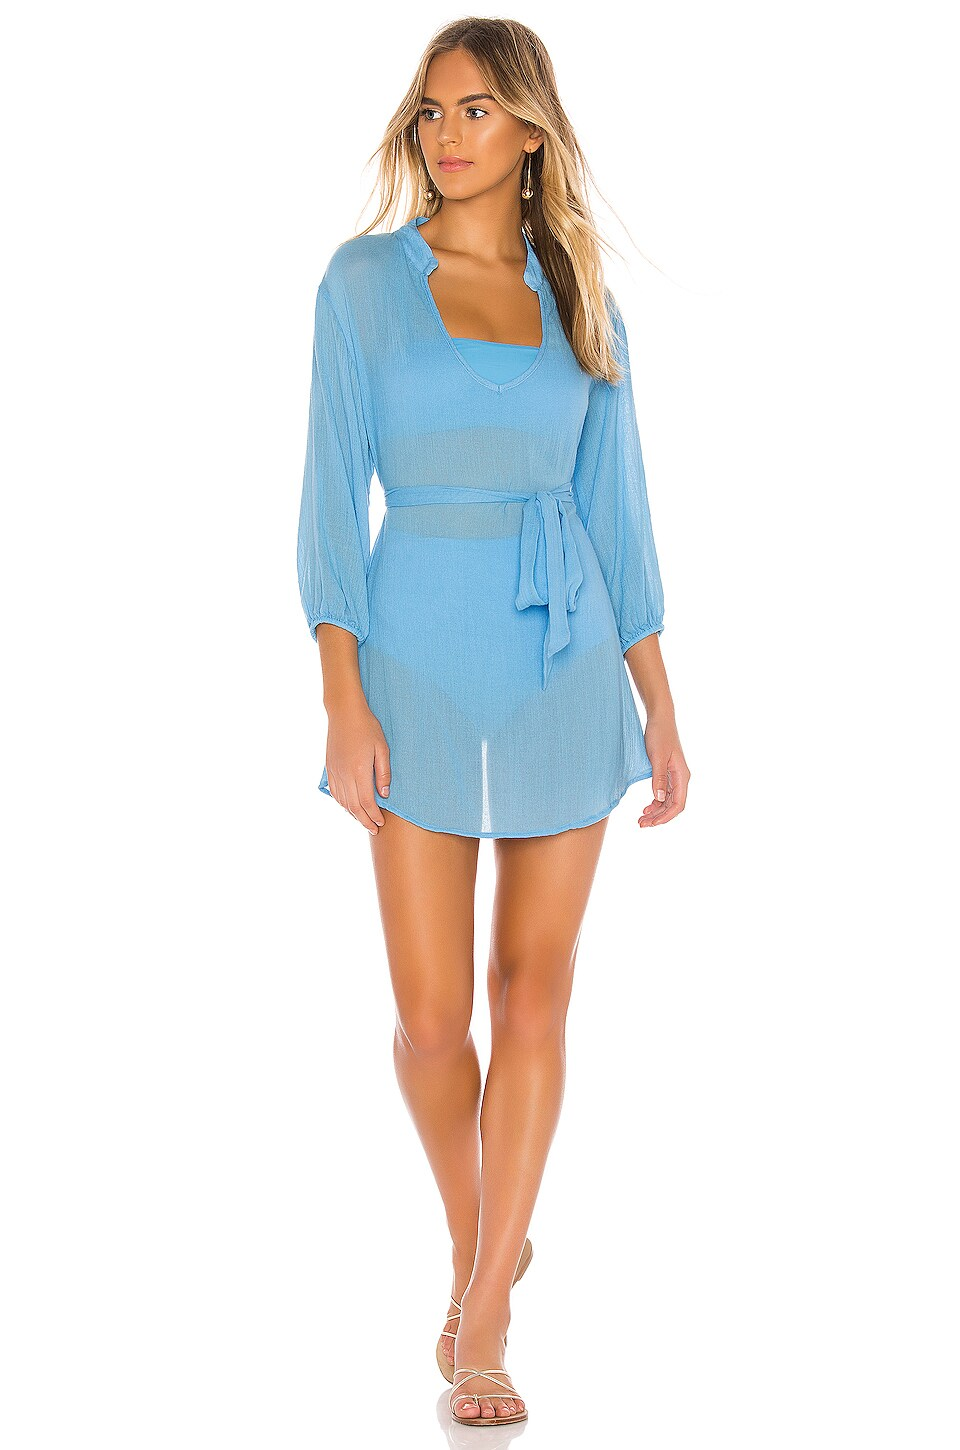 eberjey Summer Of Love Brenna Dress in Ethereal Blue